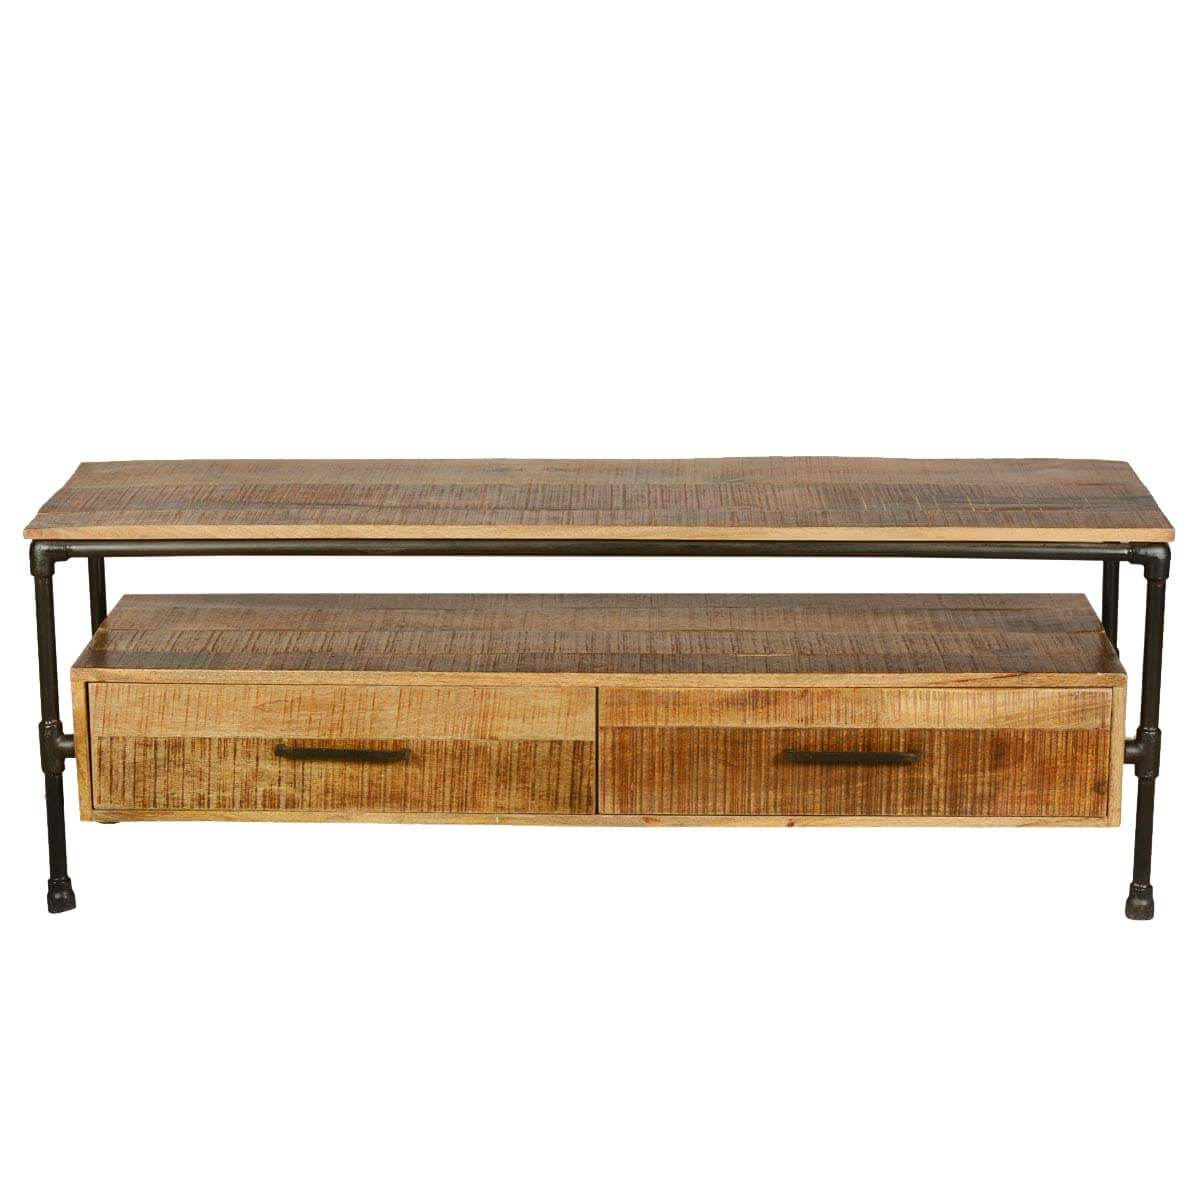 sc 1 st  Sierra Living Concepts & Holt Industrial Iron Pipe u0026 Mango Wood 2 Drawer TV Media Stand